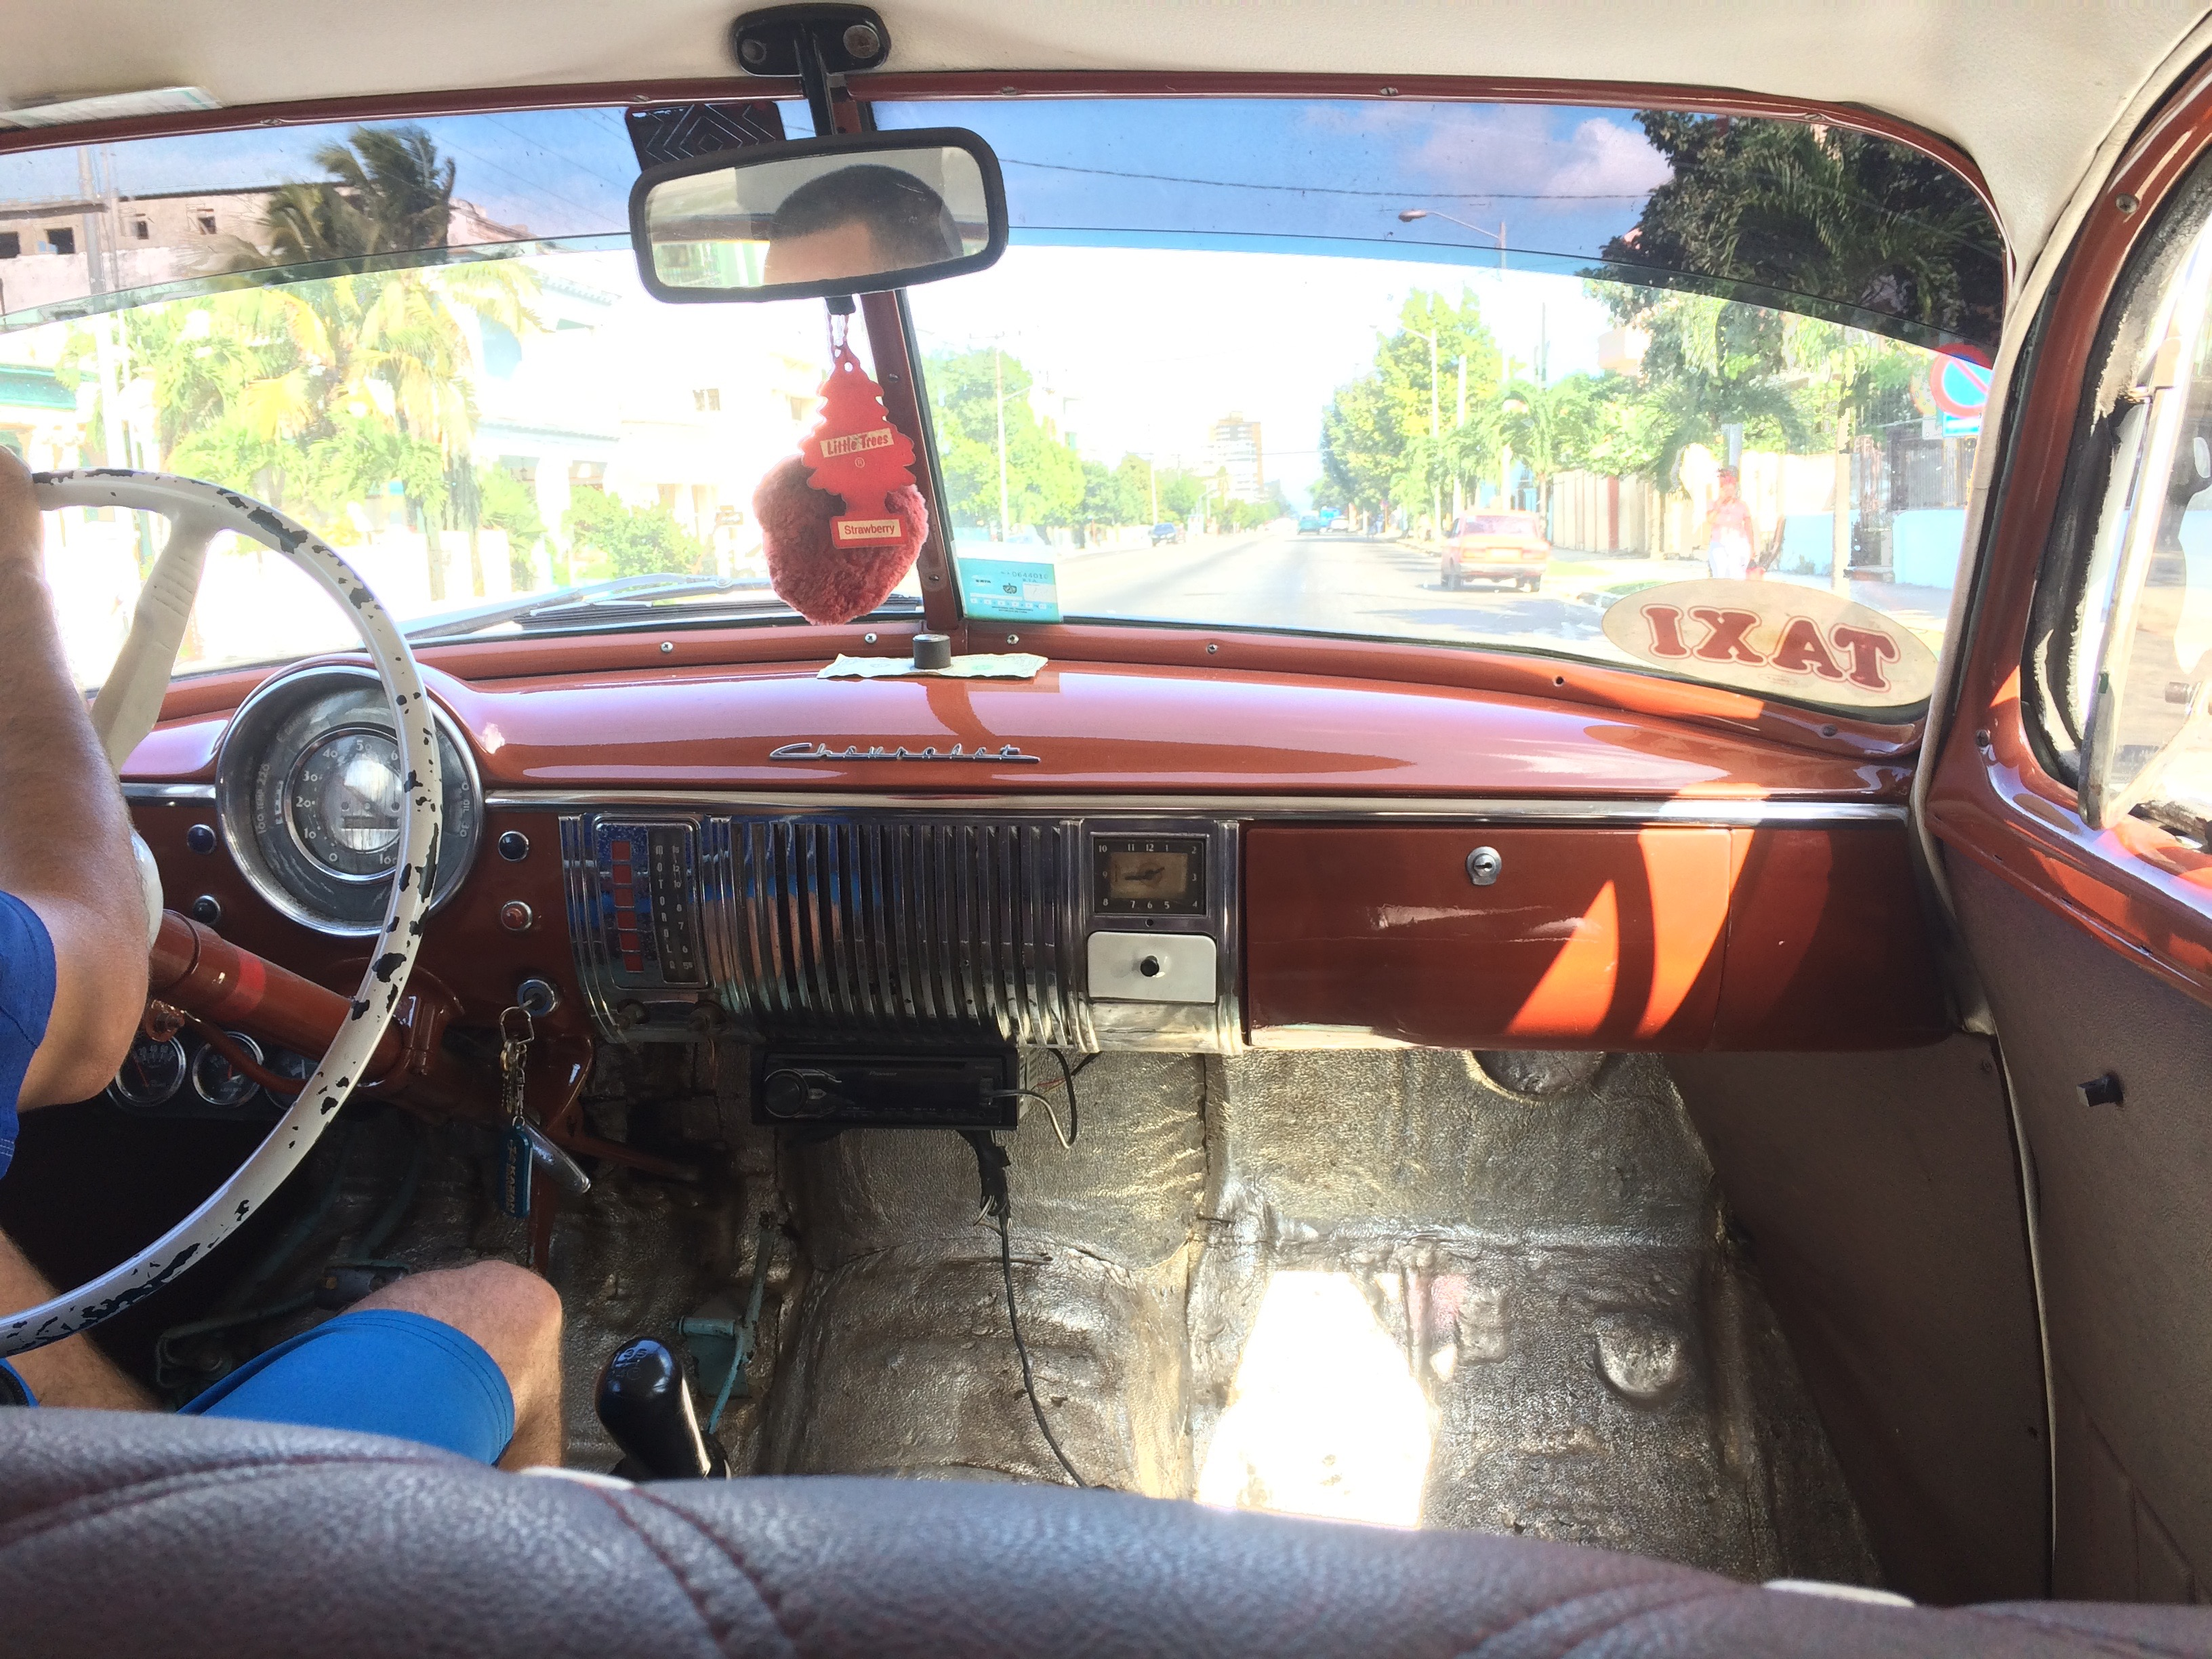 old-cuban-car-dashboard So, you want to go to Cuba? Here are some pointers. Cuba